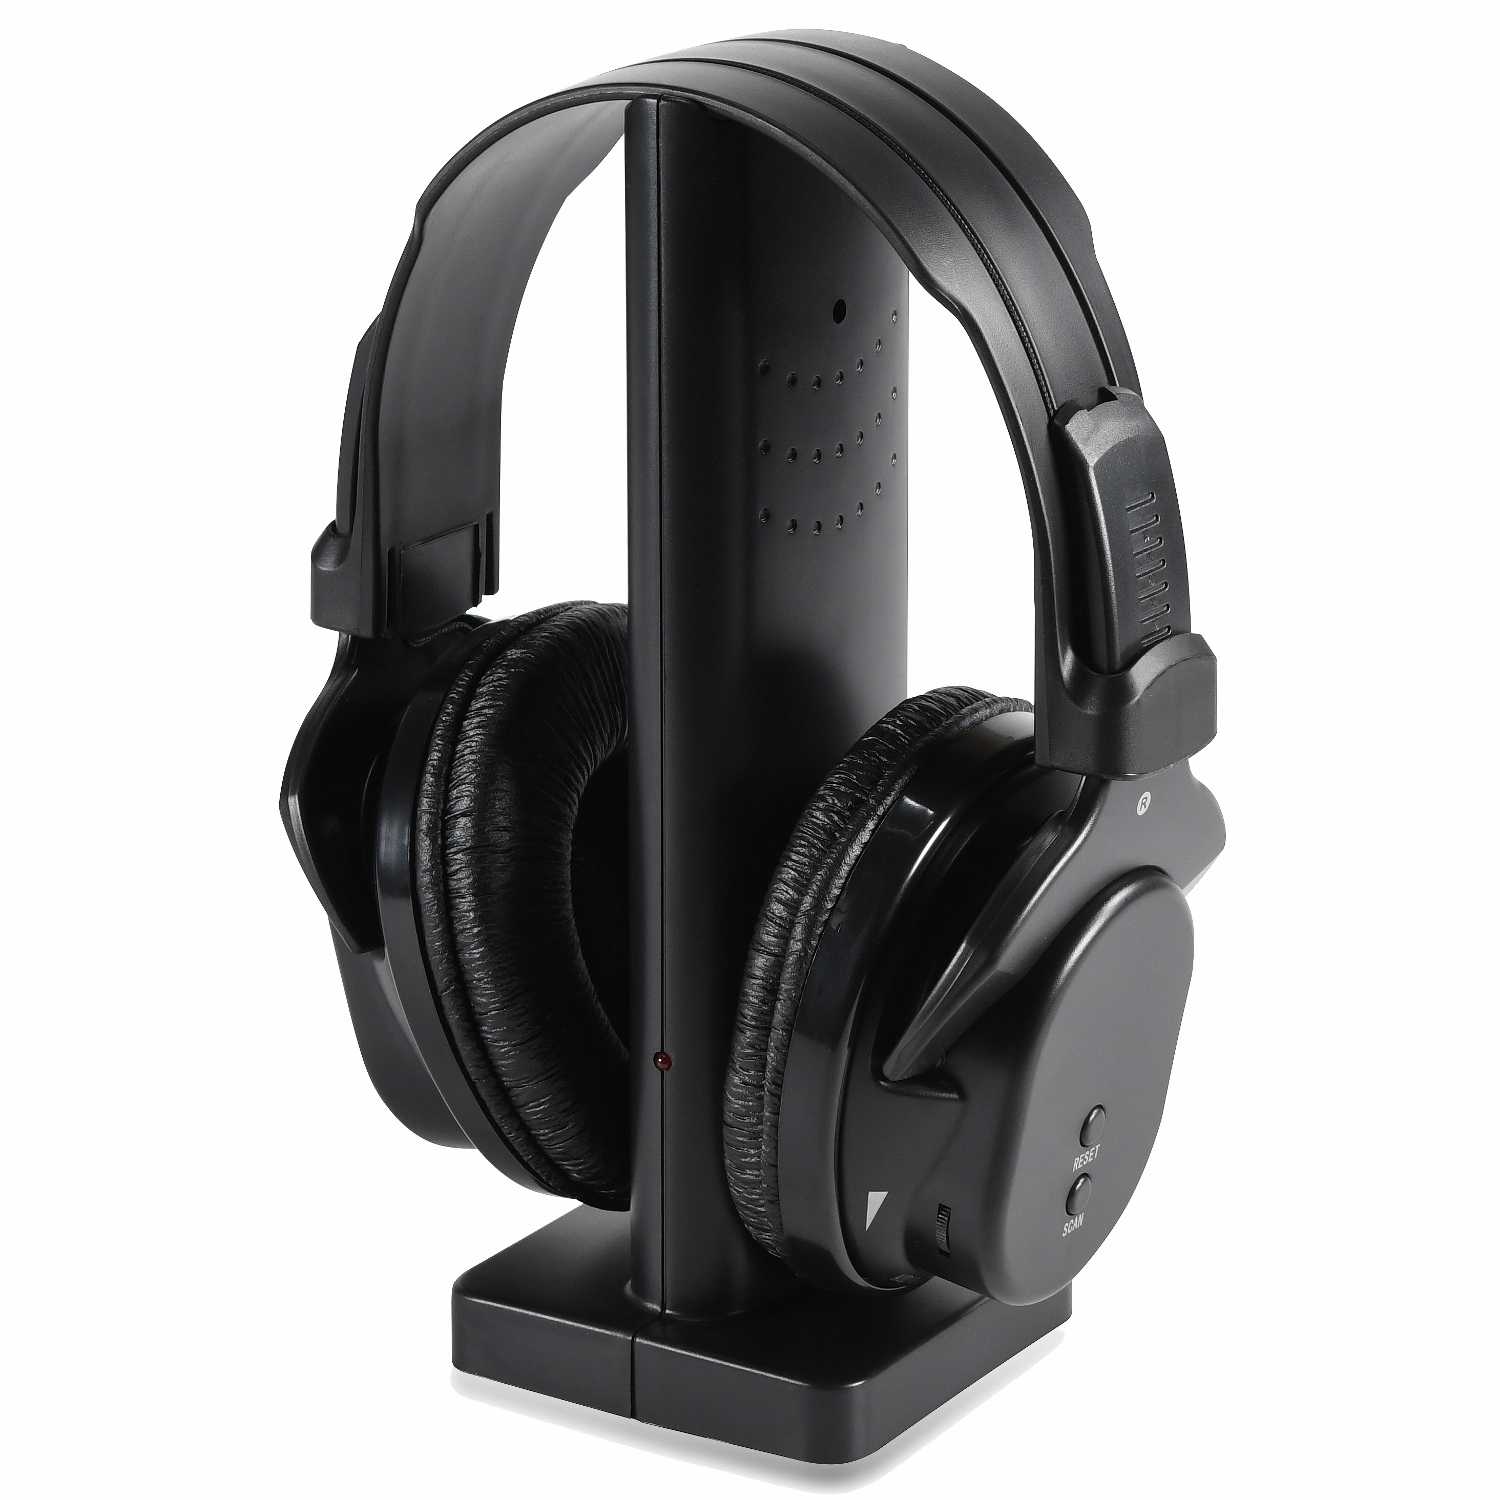 ONN Wireless TV On-Ear Headphones with Transmitter and Integrated Microphone, Black (Non-Retail Packaging)